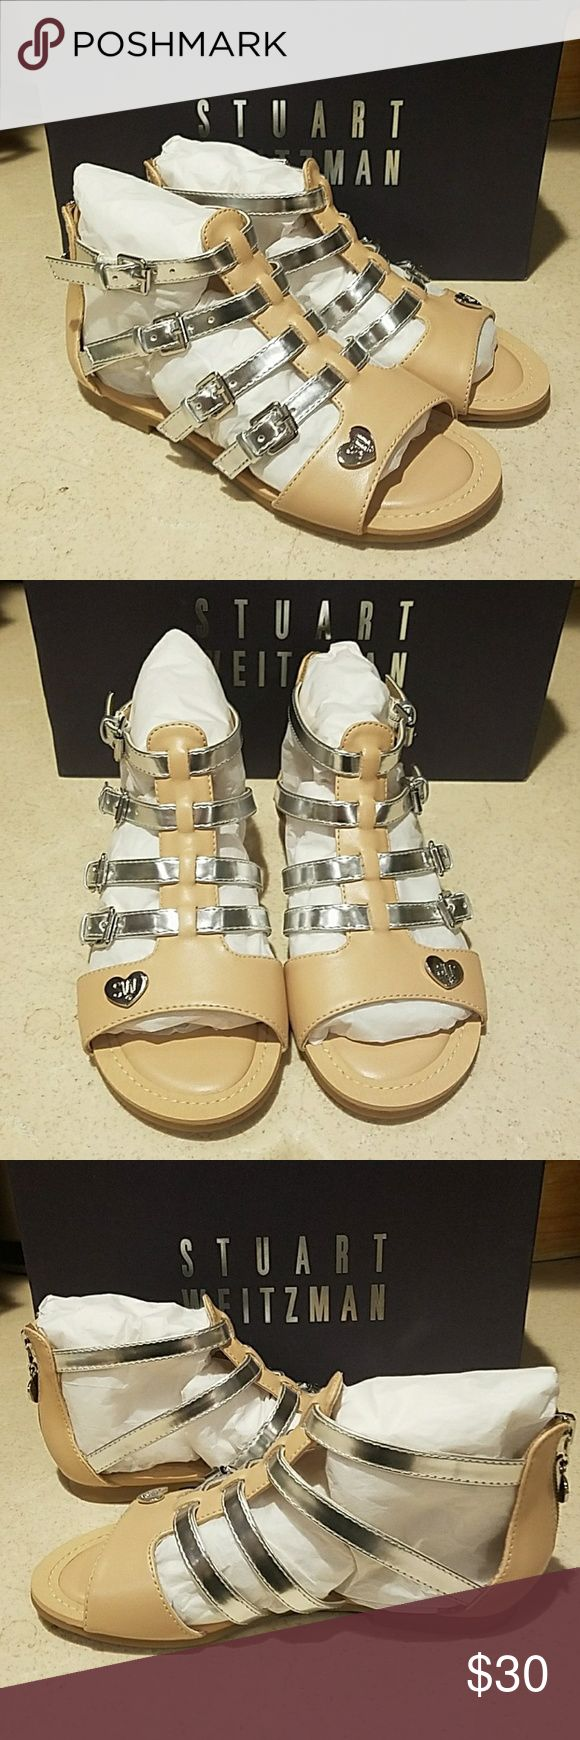 Stuart Weitzman Gladiator sandals girls sz 13 NIB Absolutely GORGEOUS pair of Stuart Weitzman Two Tone Gladiator sandals in Camel/Silver with silver tone hardware in girls size 13.  Brand new in box from smoke and pet free.   AUTHENTICITY GUARANTEED Stuart Weitzman Shoes Sandals & Flip Flops